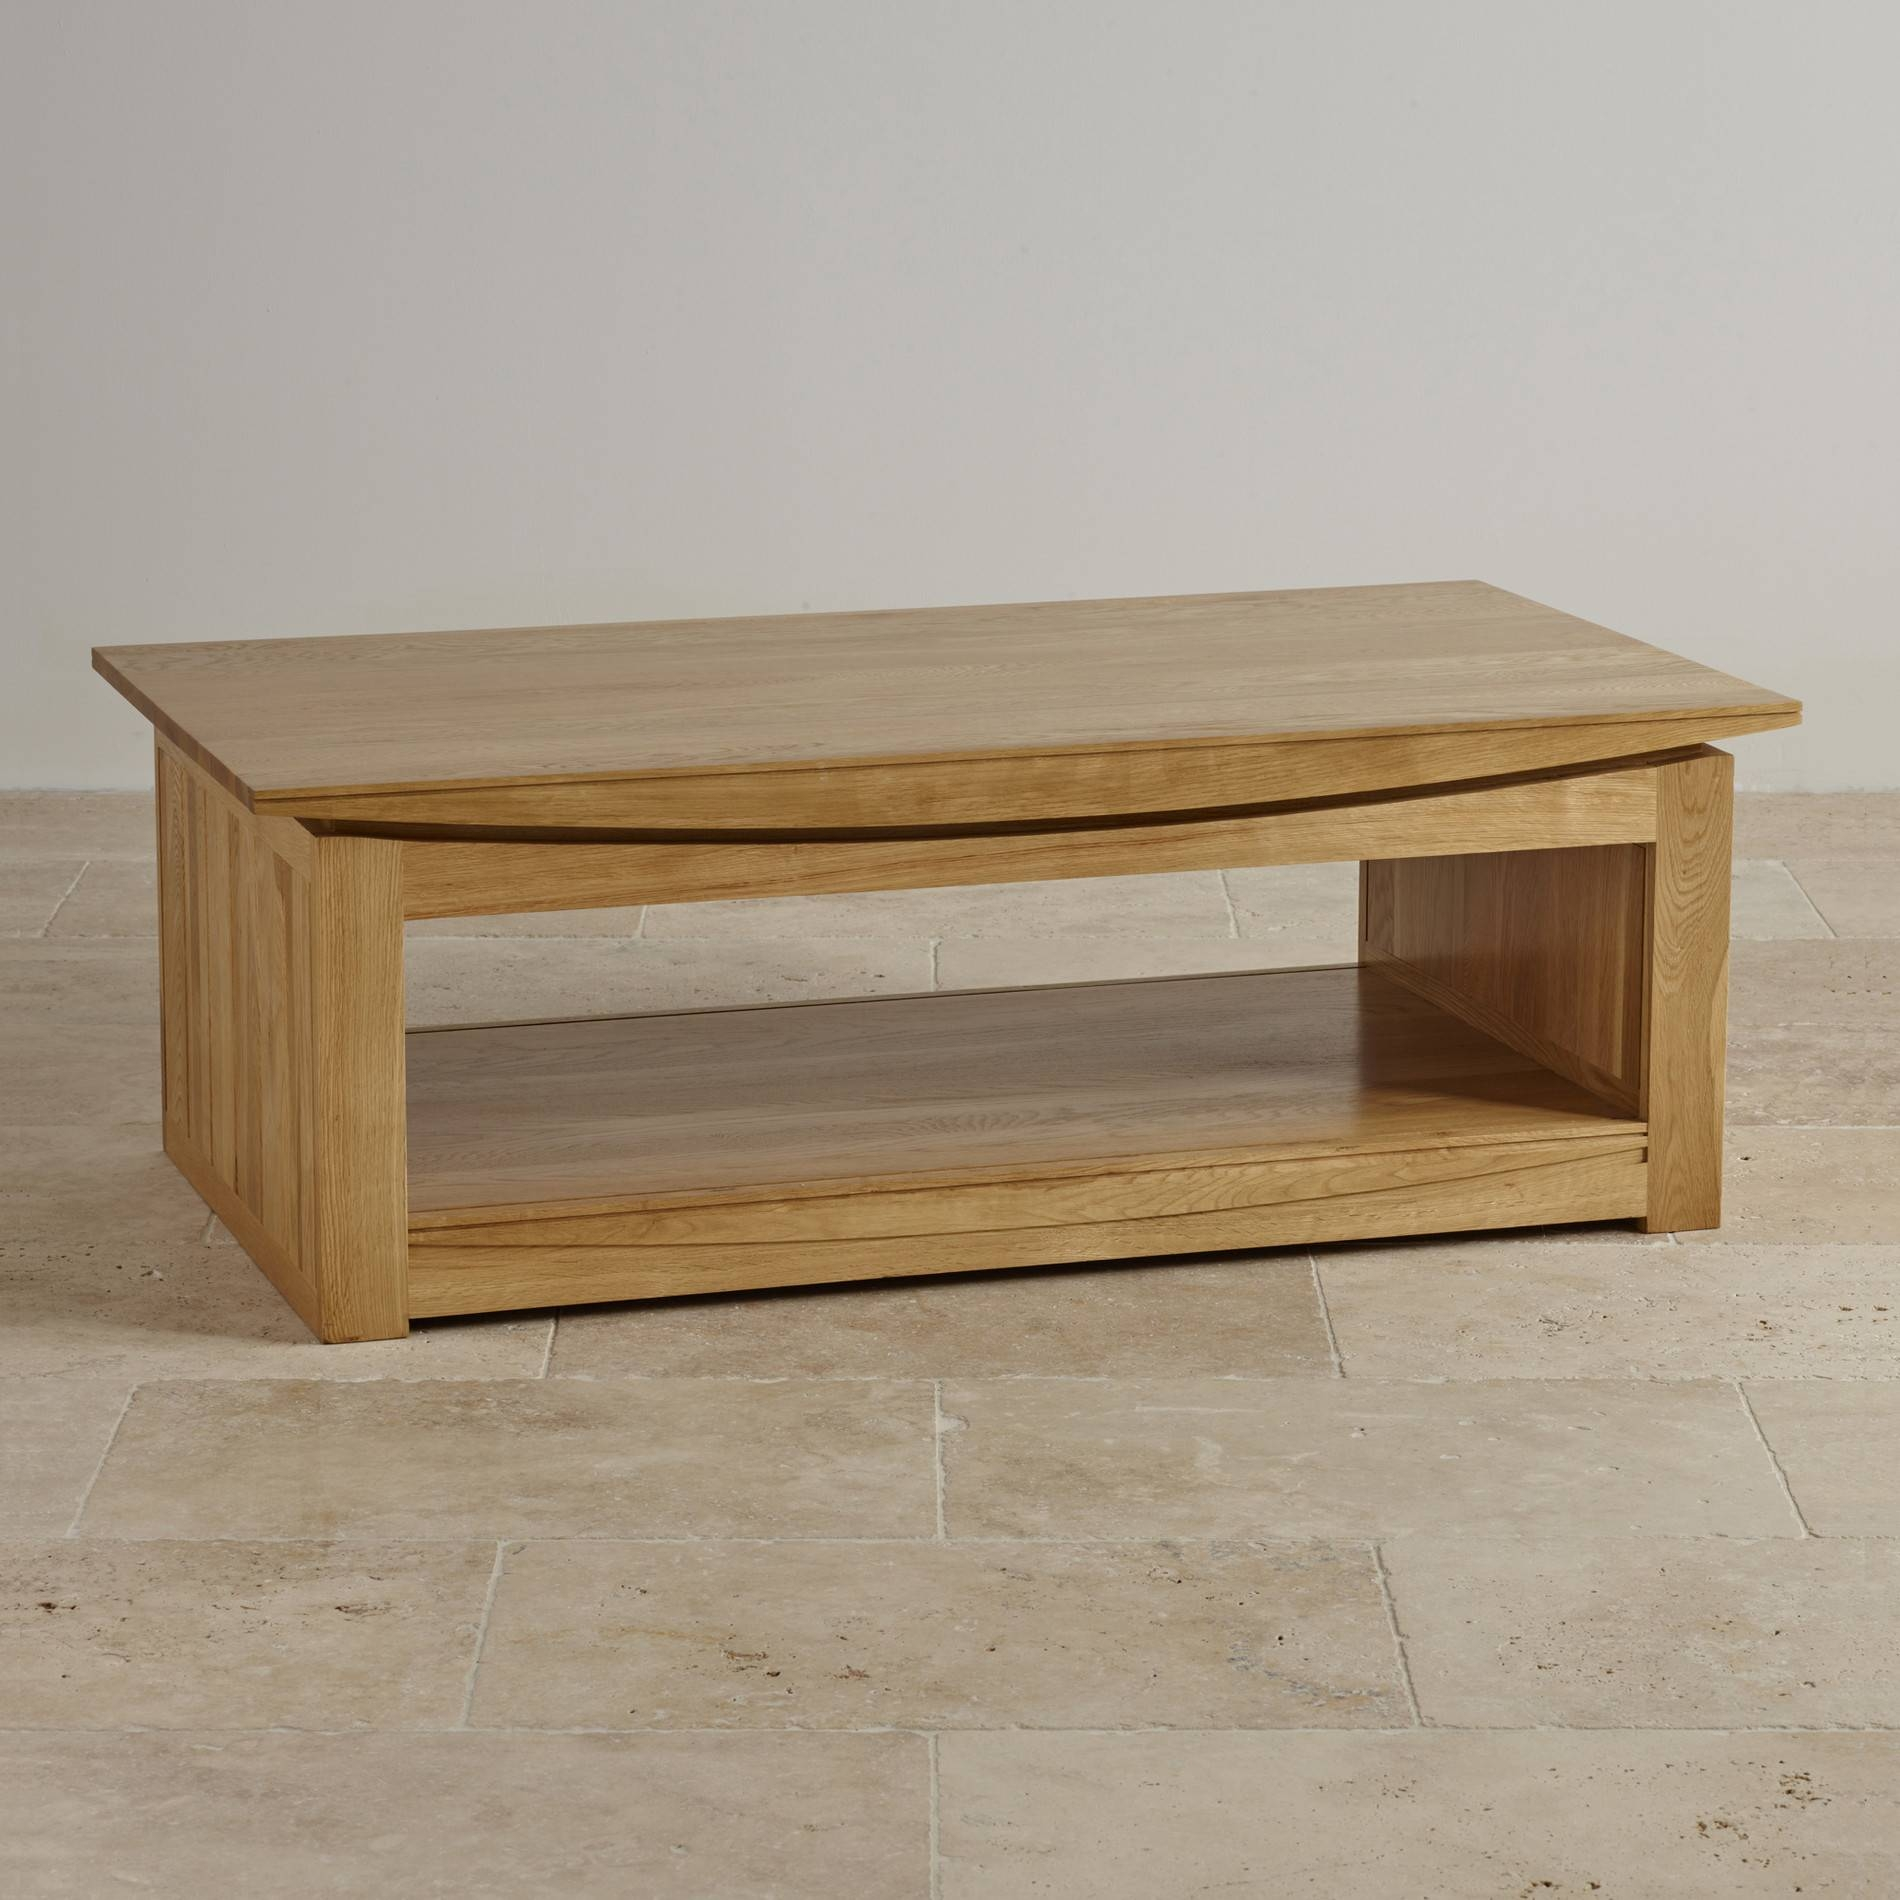 15 Collection of Square Coffee Table Oak